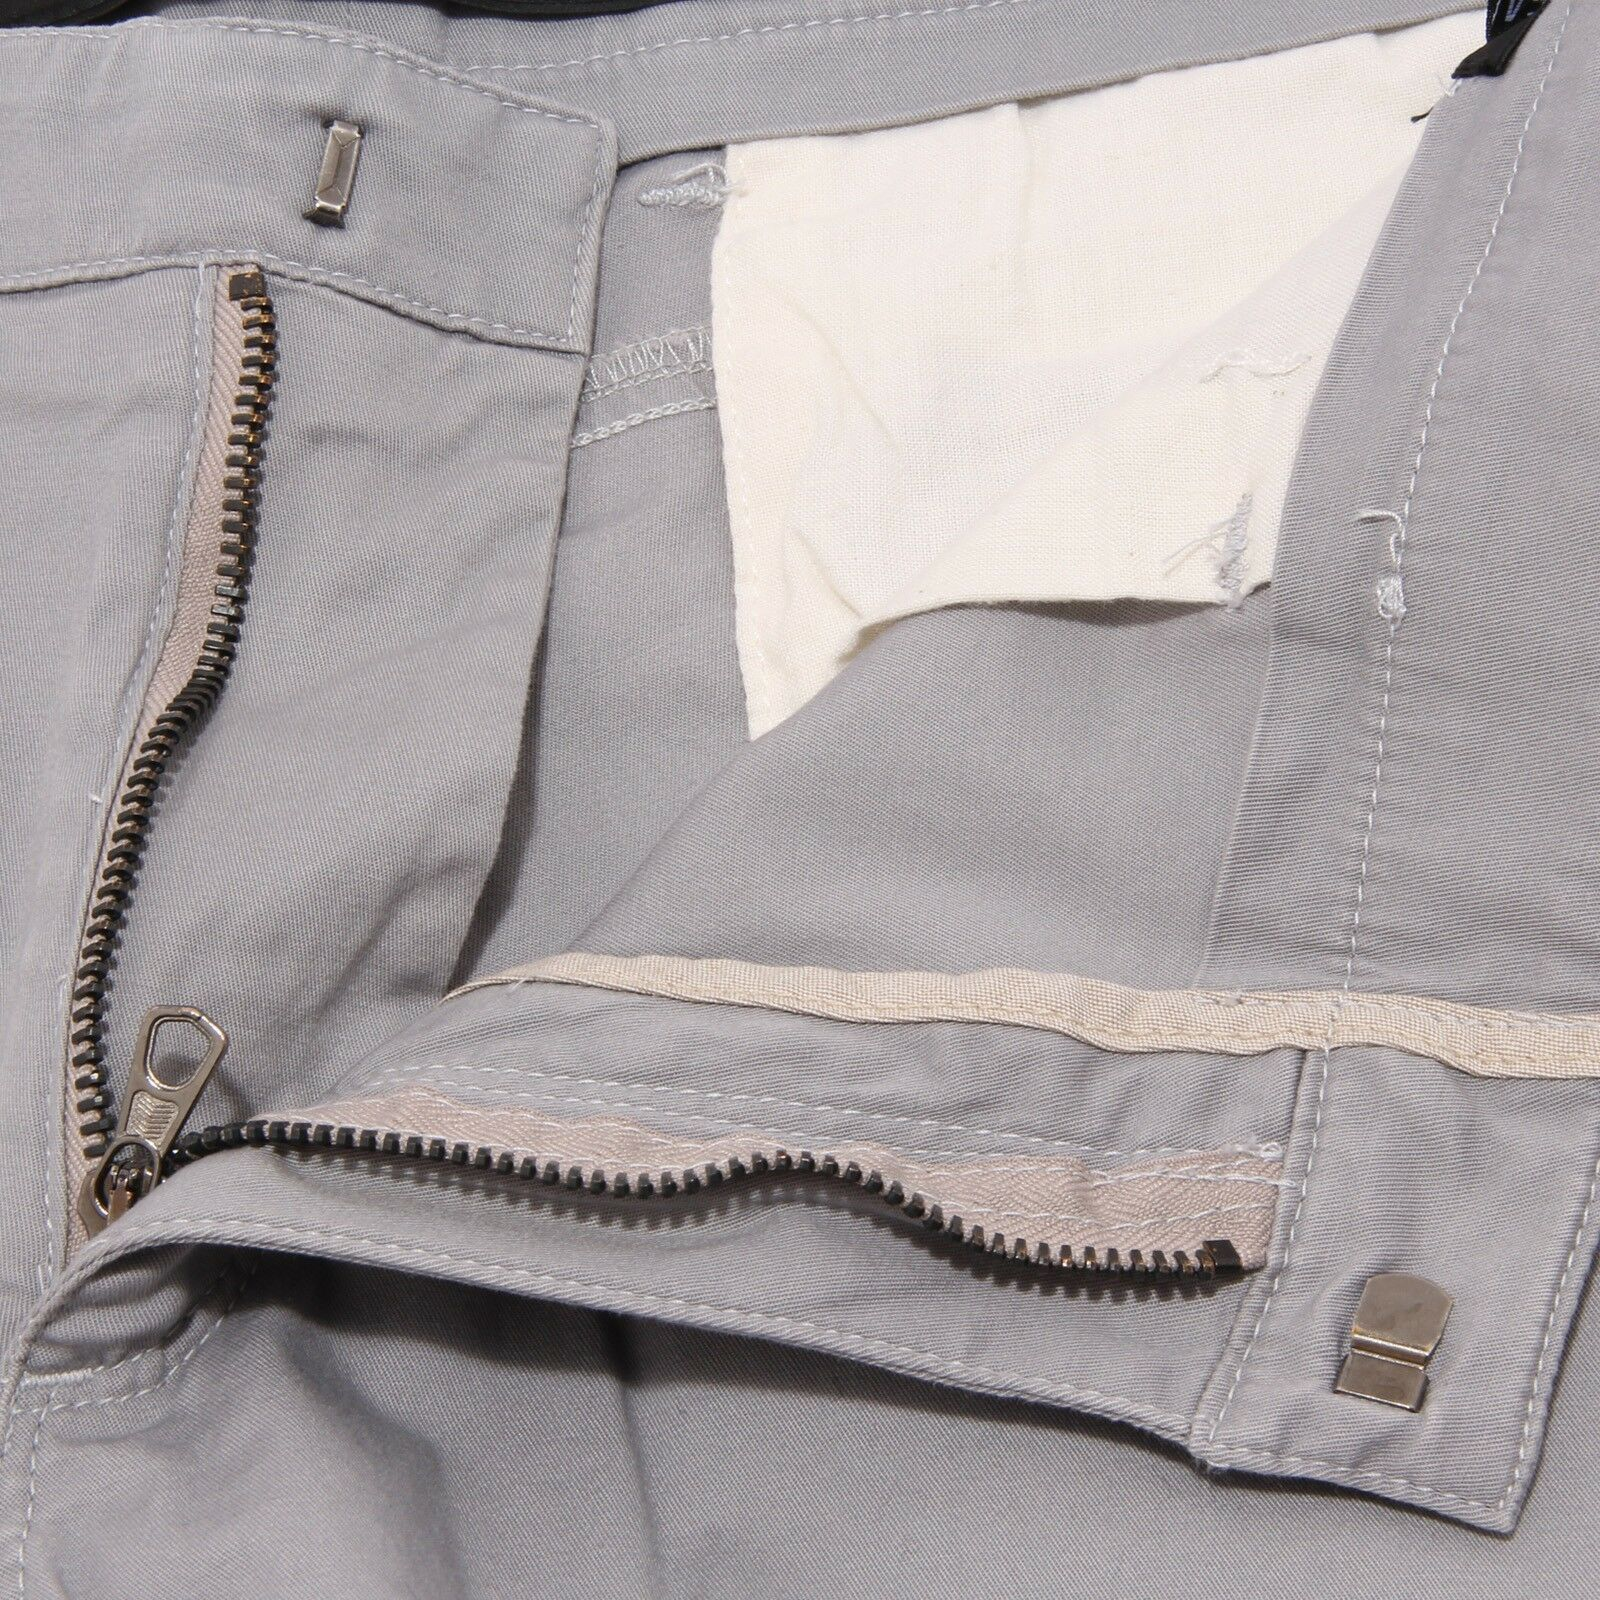 8054U pantalone uomo MESSAGERIE cotton light grigio trouser trouser trouser men cb7aa0